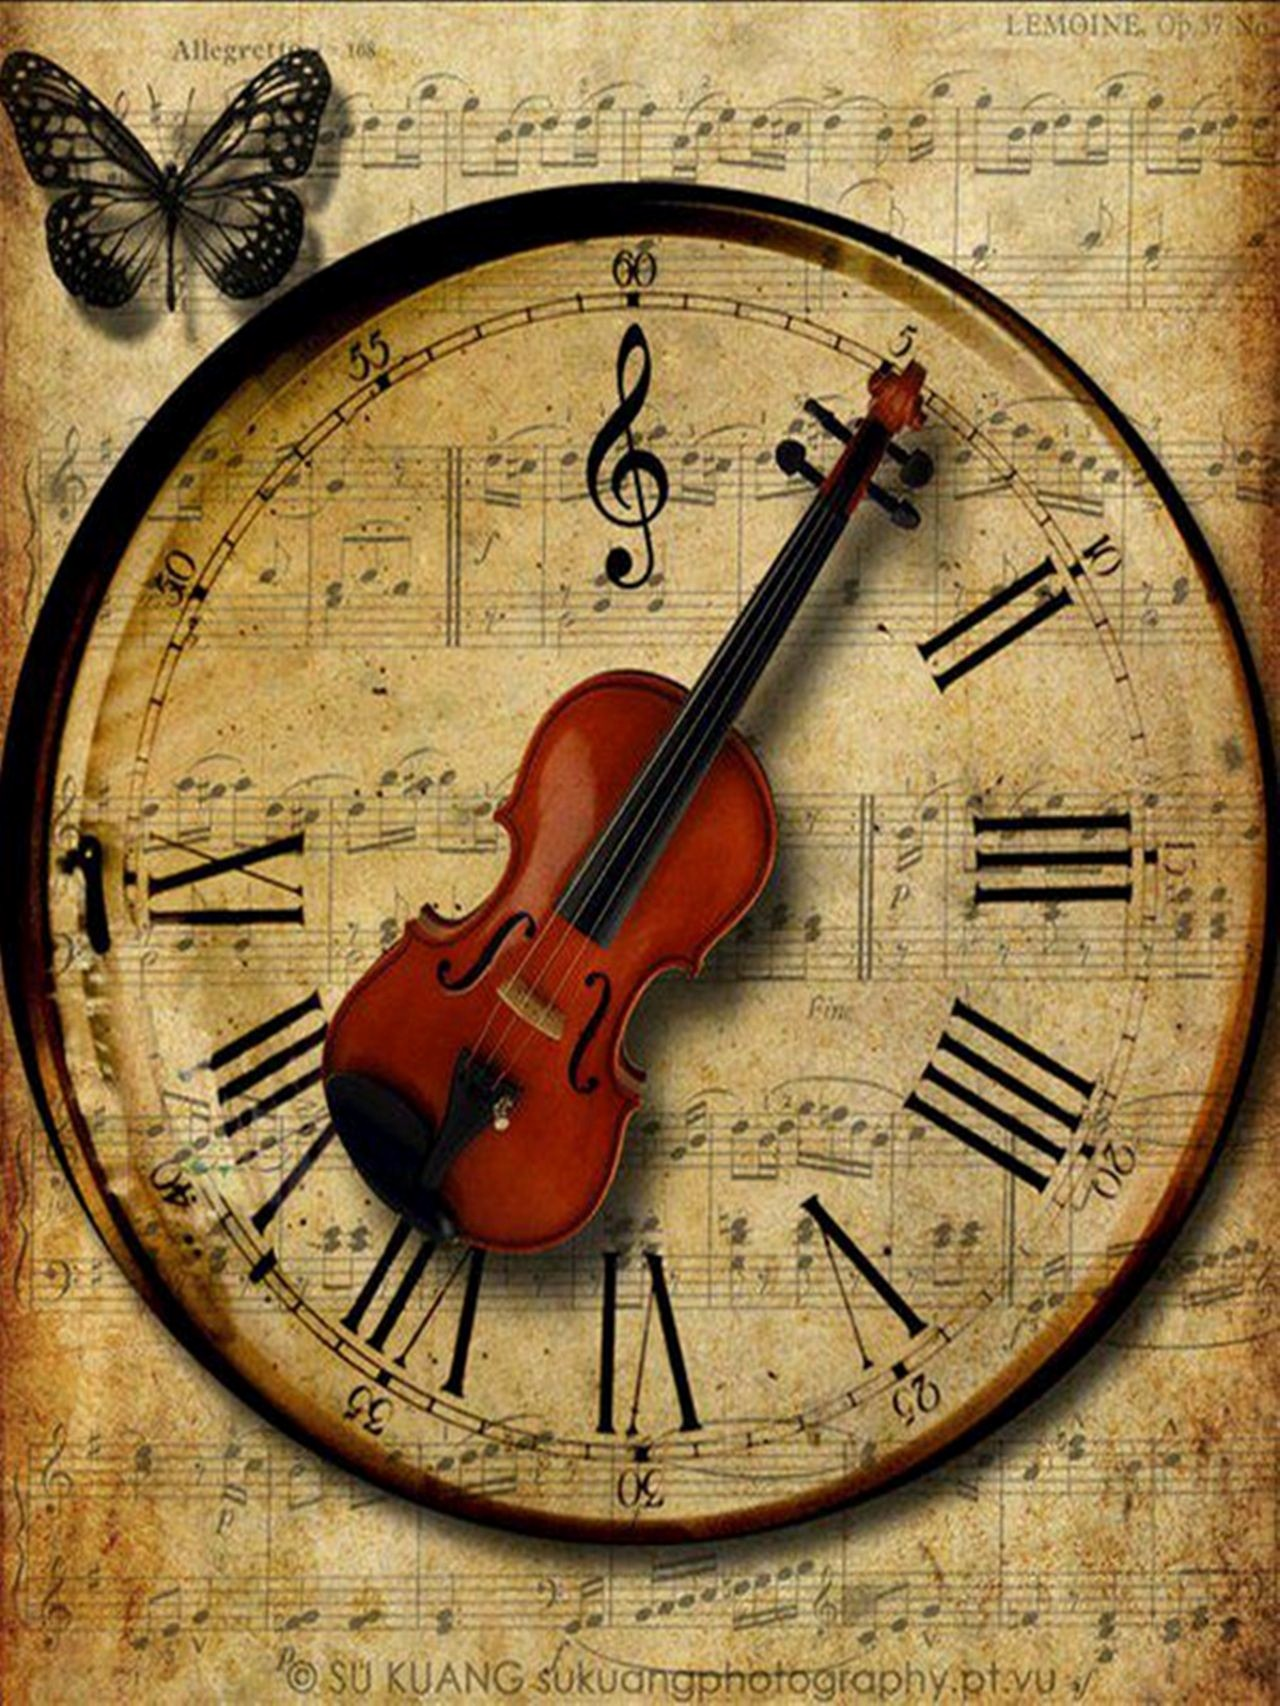 One Minute Timer with Music Beautiful Old Fashioned Clock with Violin as Hands Pointing to Roman